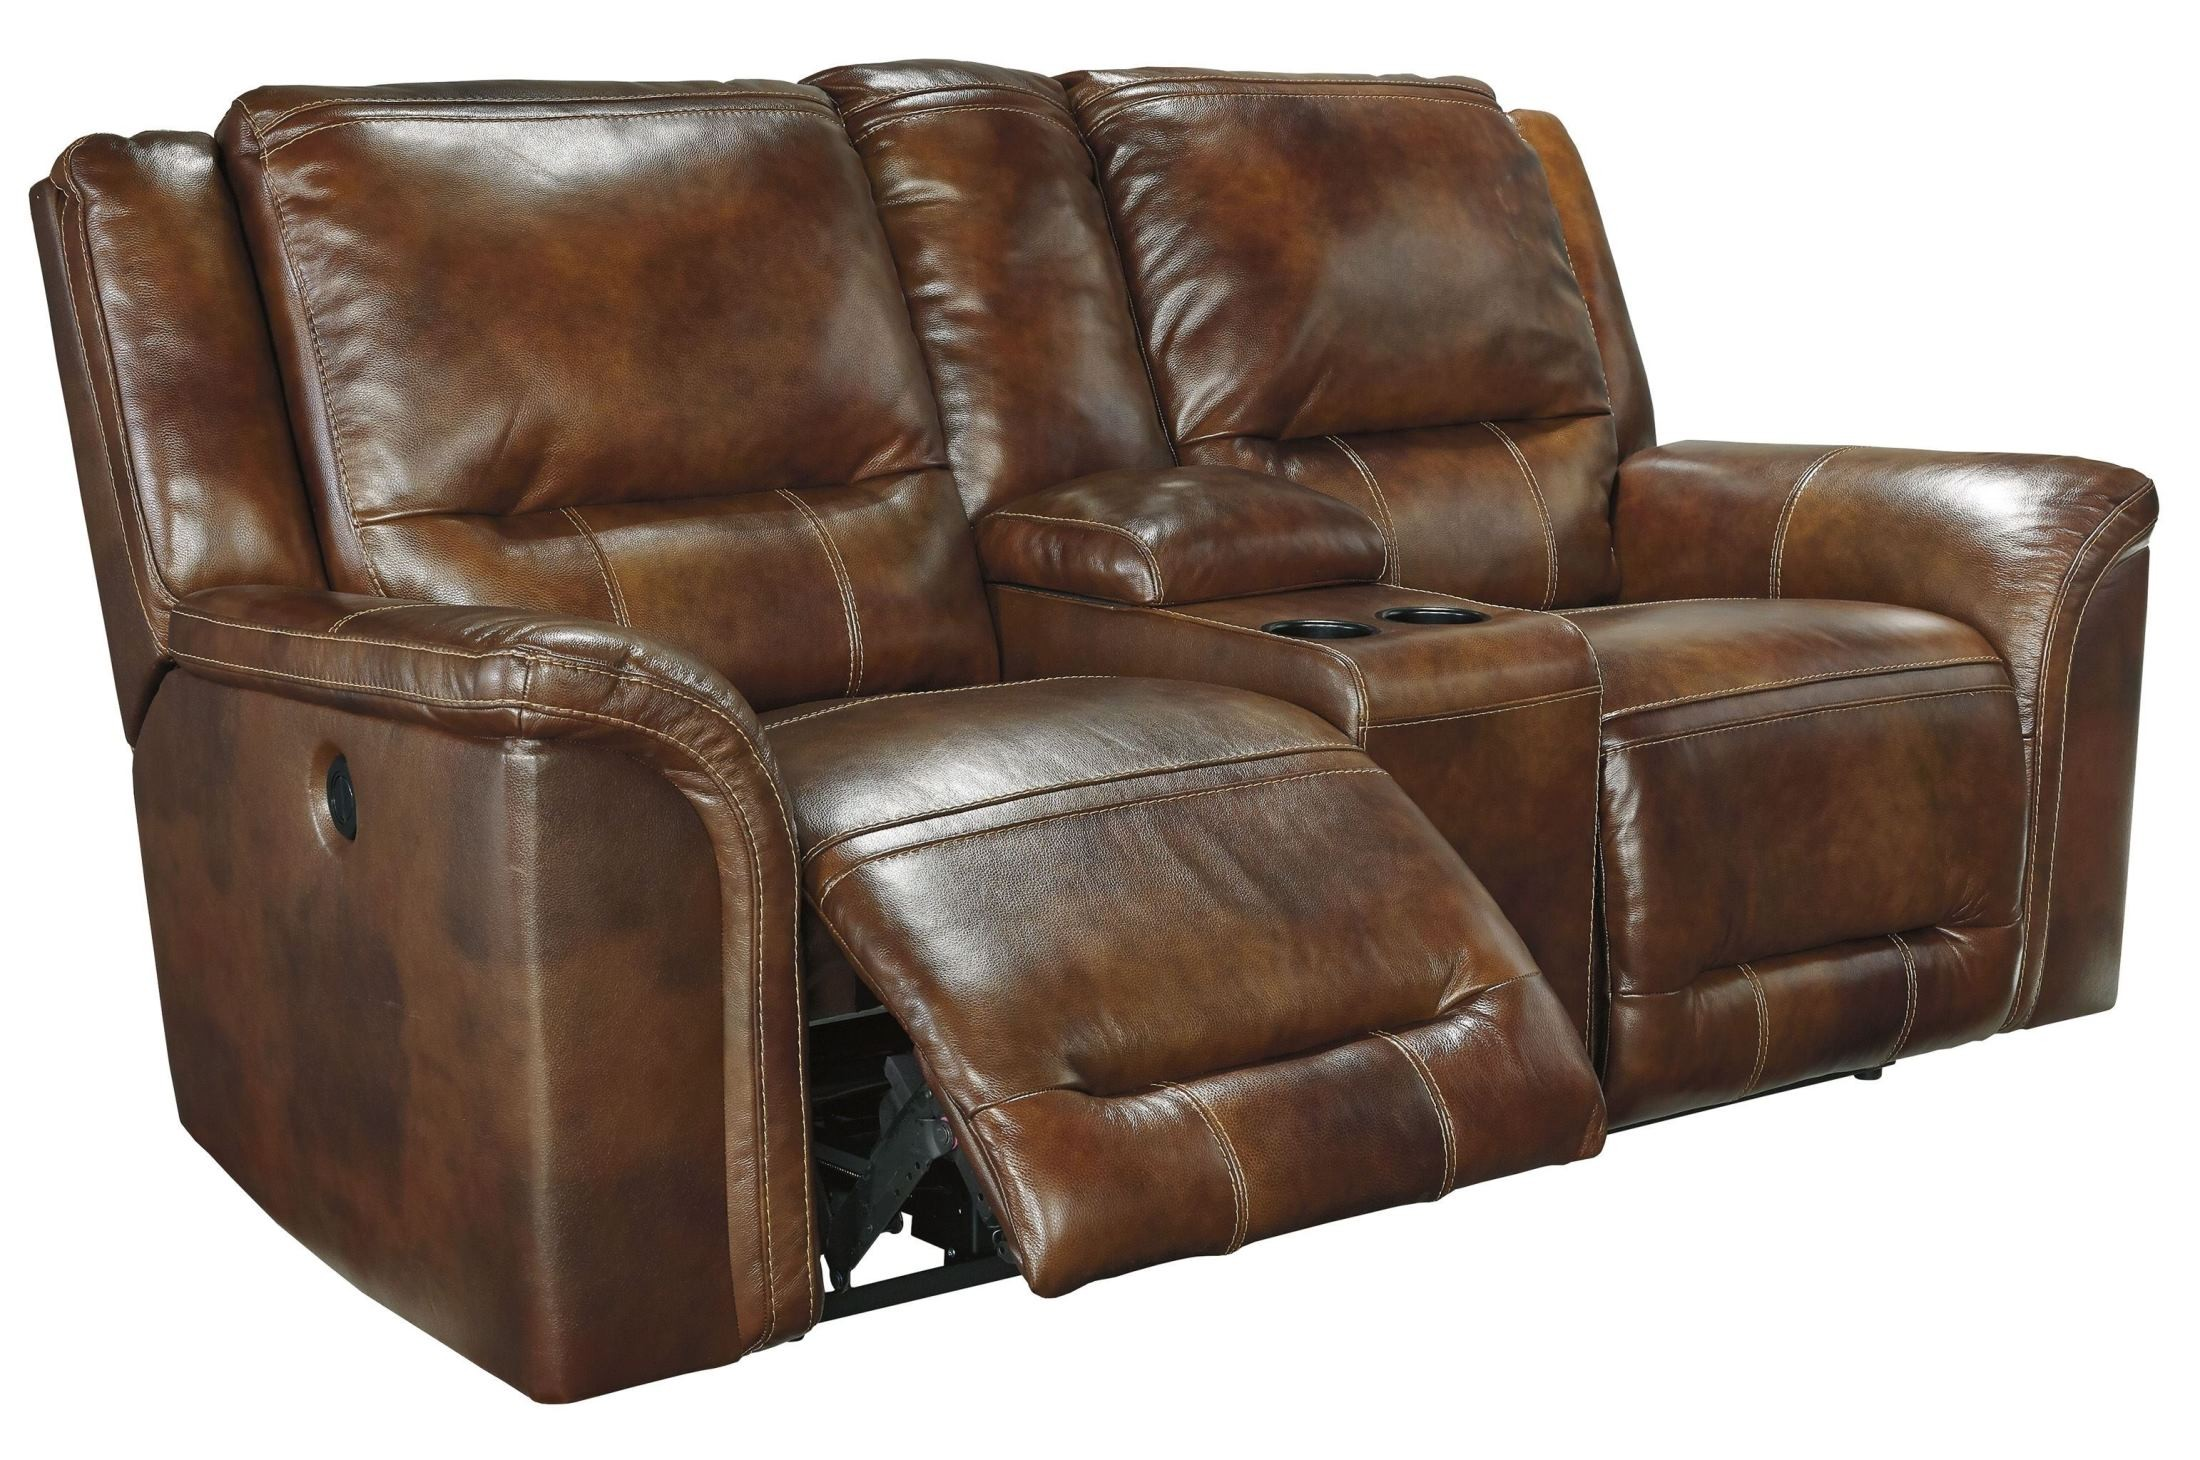 Jayron Harness Double Reclining Power Loveseat With Console From Ashley U7660096 Coleman